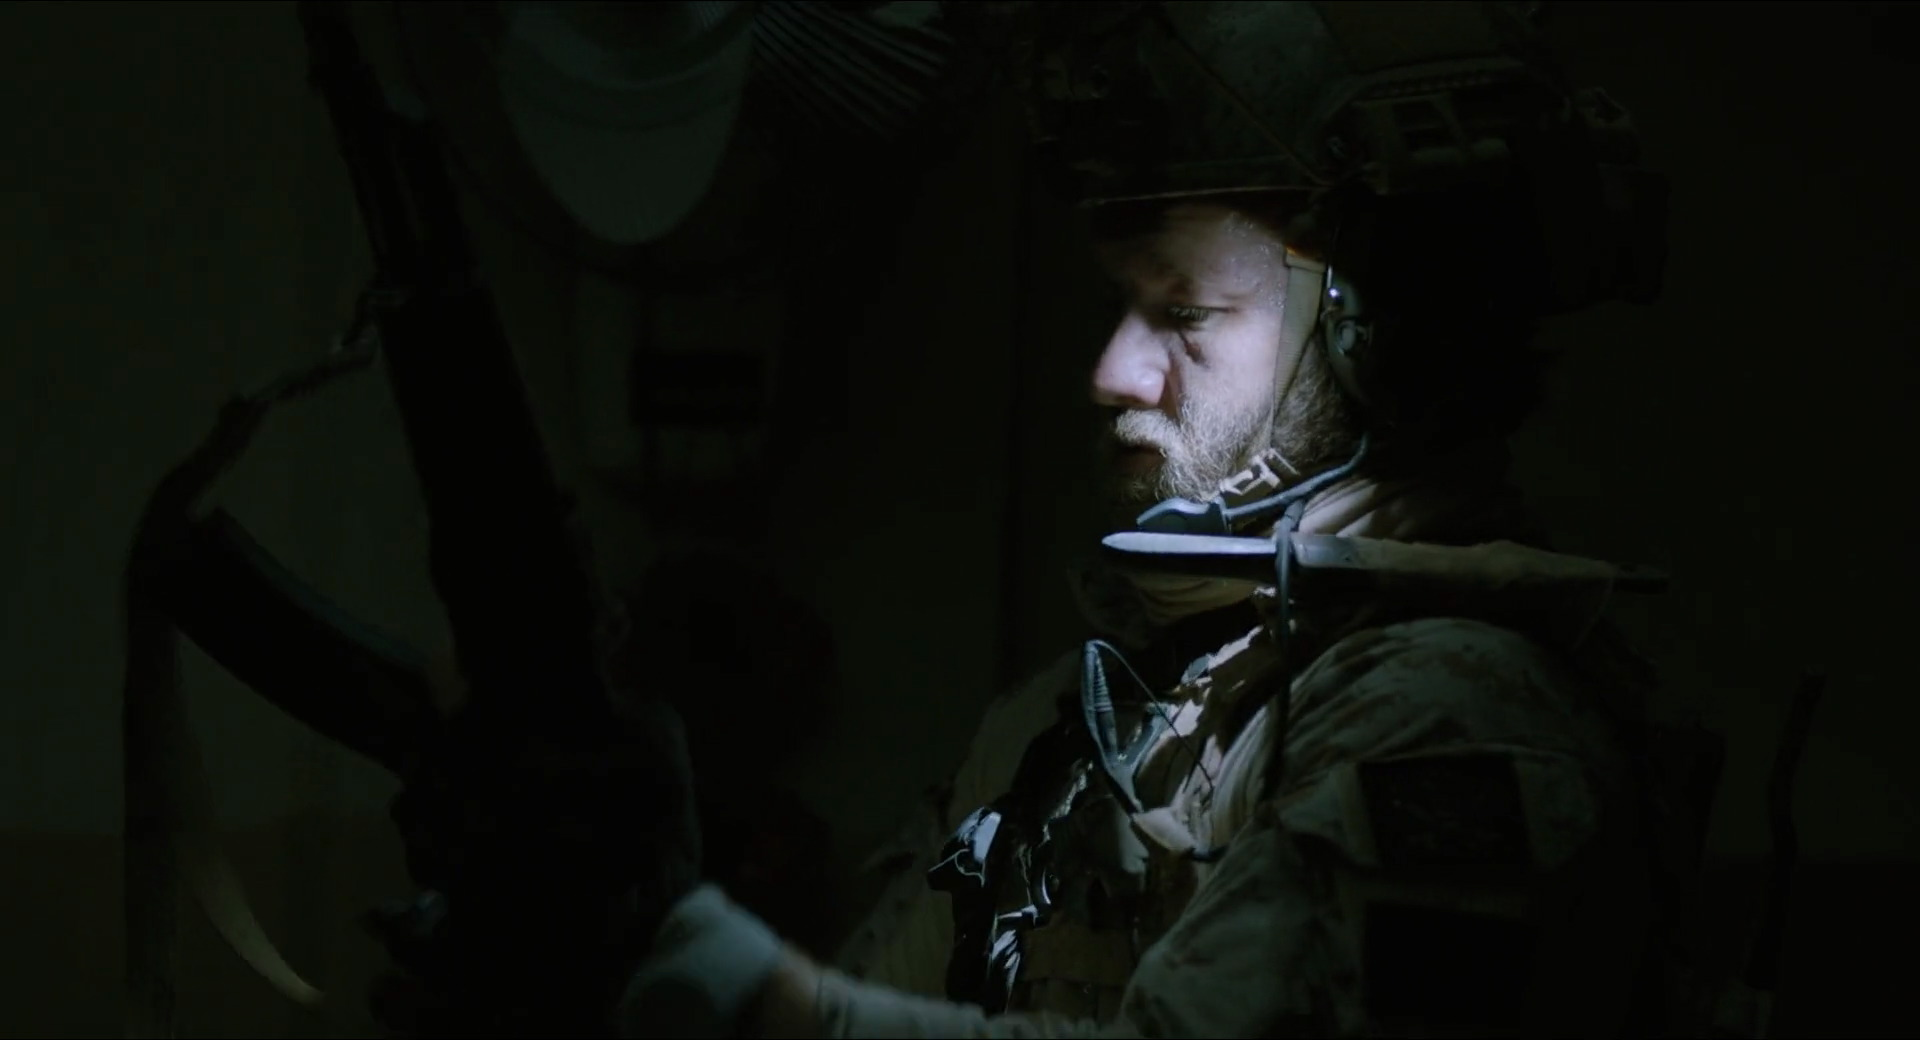 Zero Dark Thirty Full Movie Download For Mobile Dvd Max Data Size